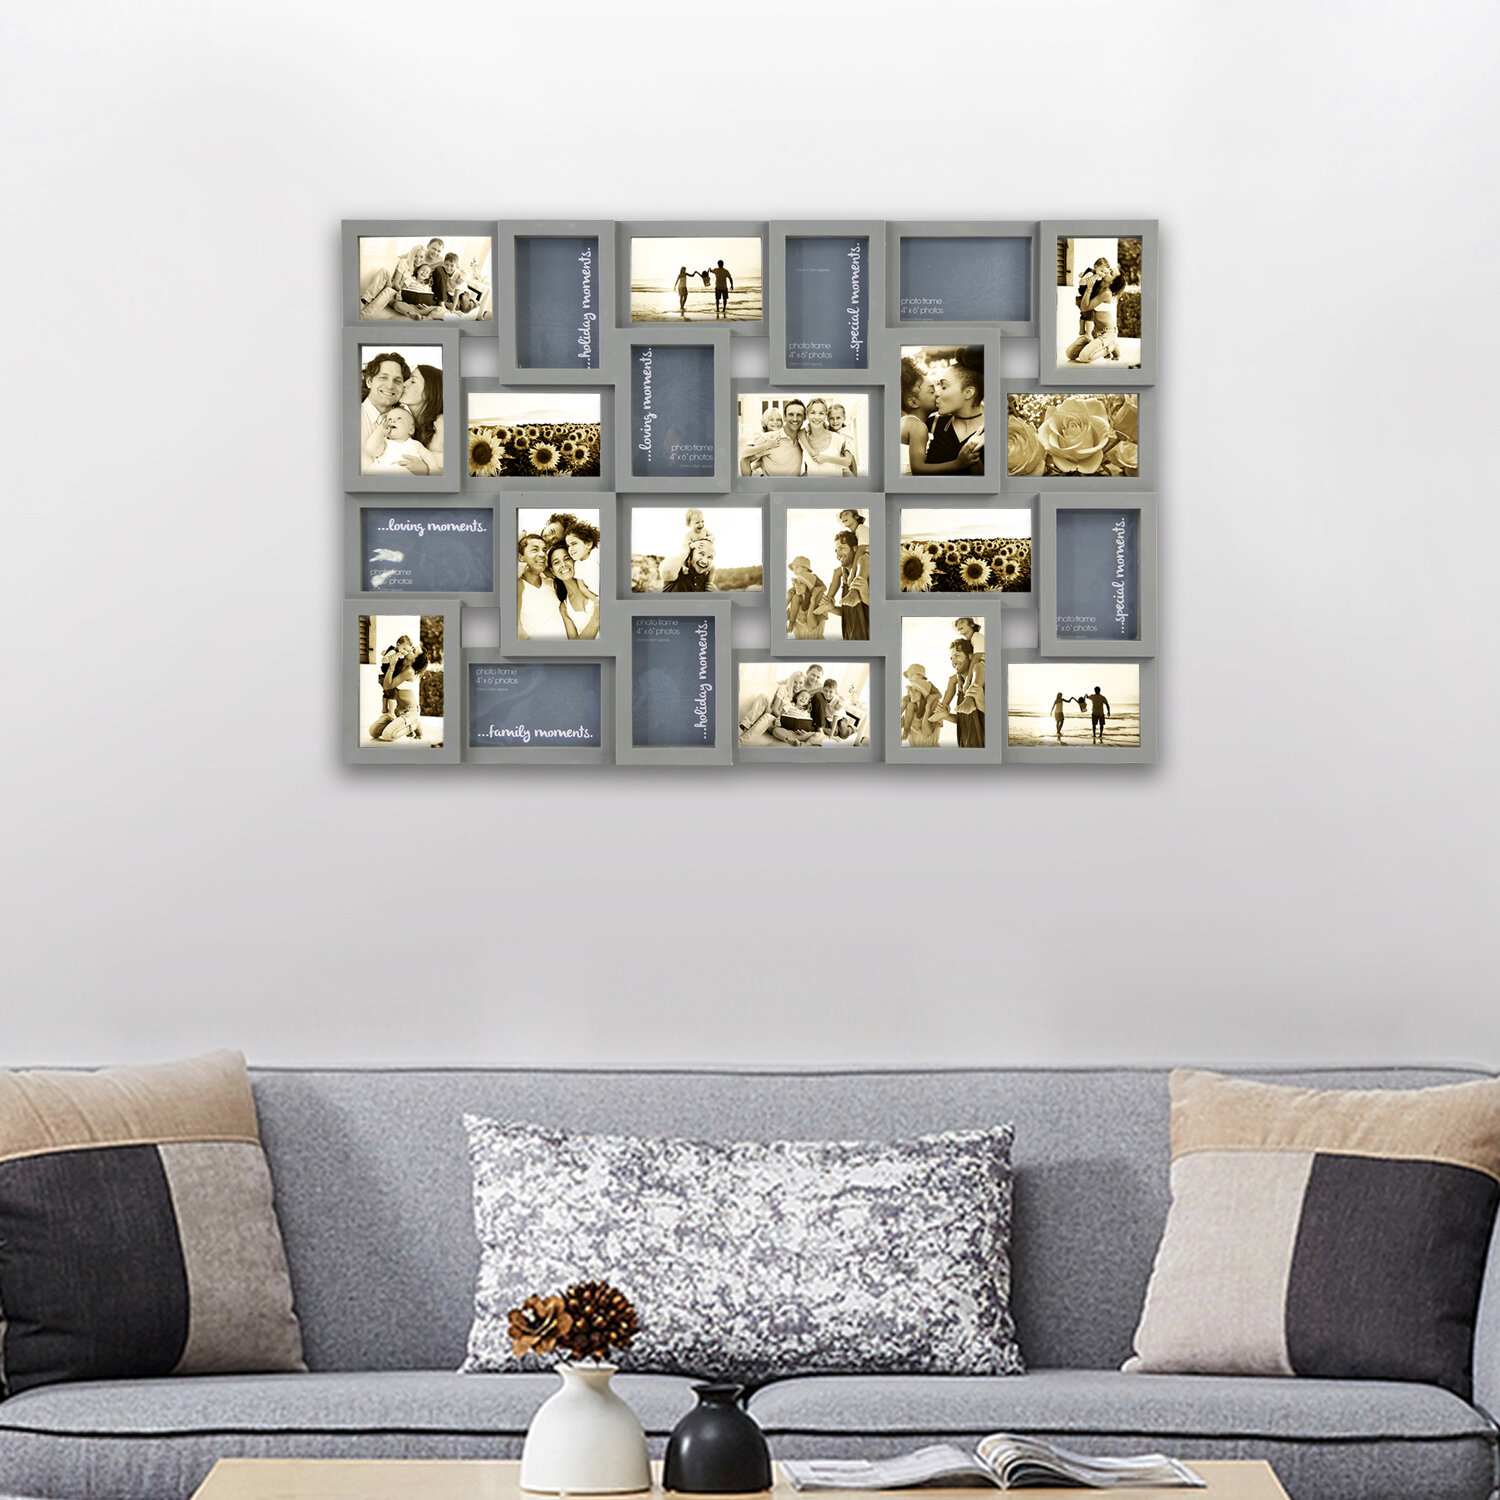 Harriet Bee Ehlers Decorative Family Collage Wall Hanging Picture Frame Reviews Wayfair Ca